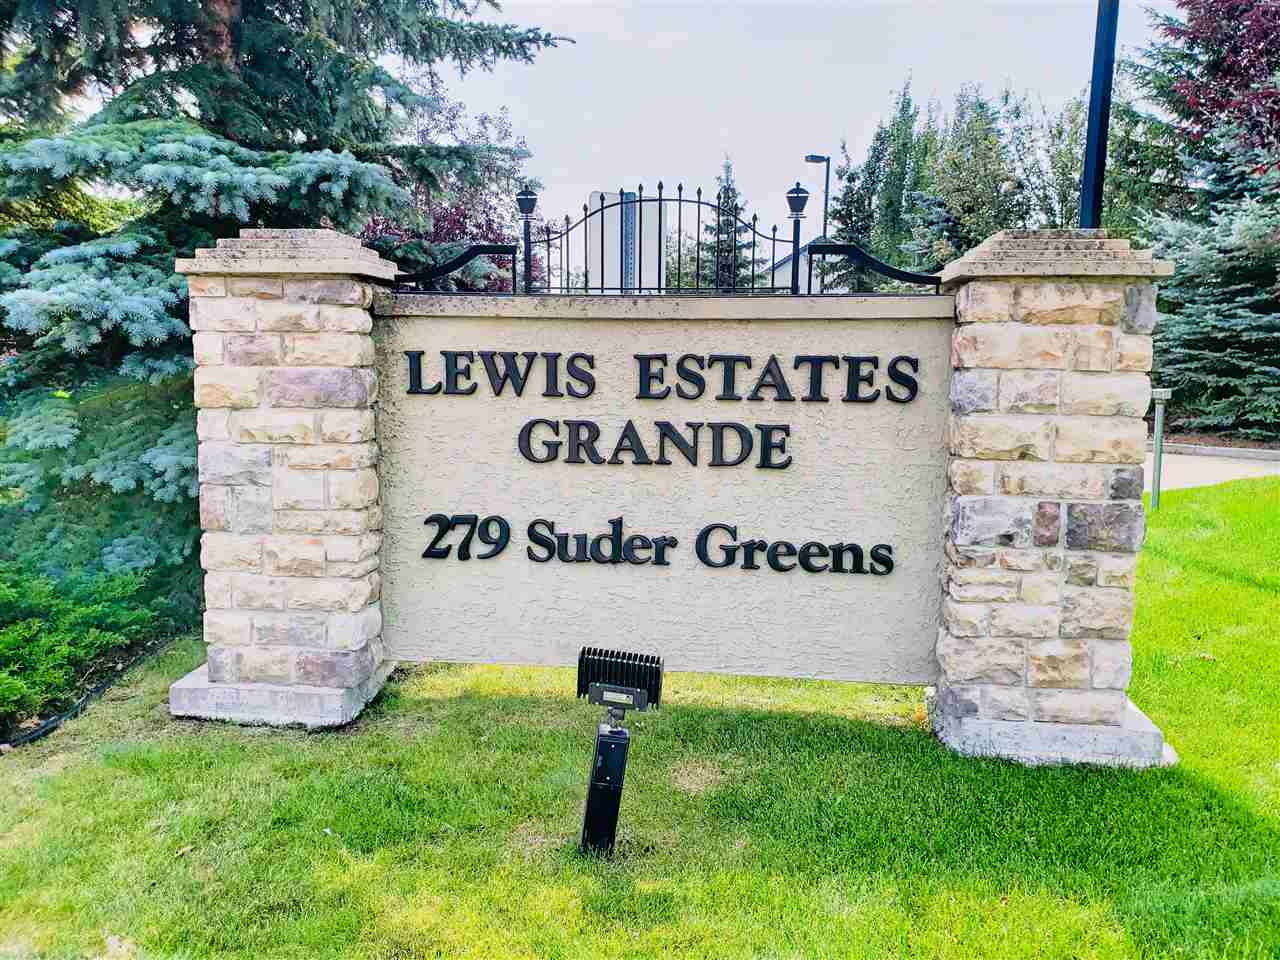 FEATURED LISTING: 203 279 SUDER GREENS Drive Edmonton